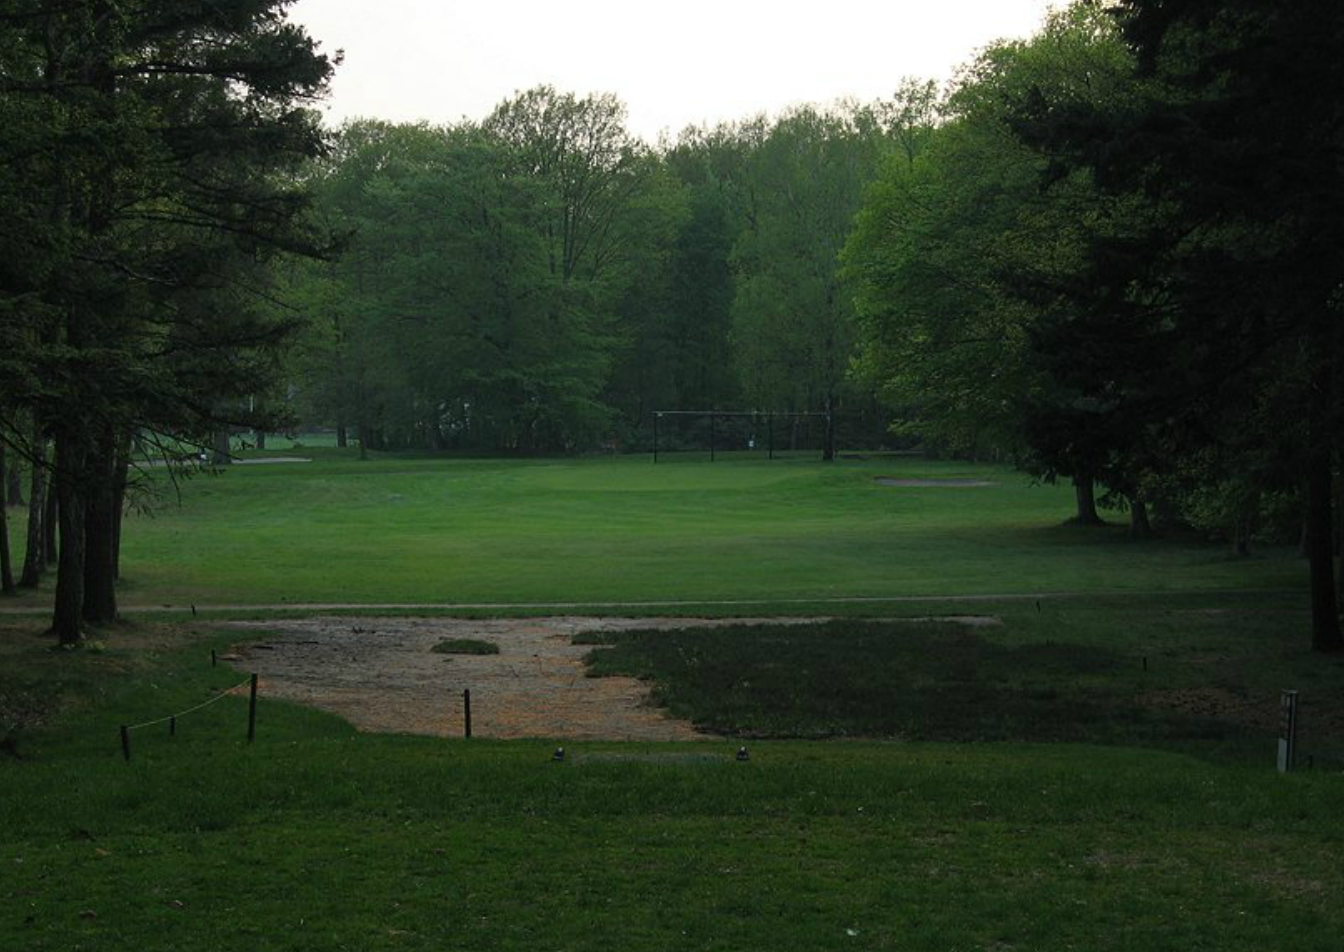 Hole 18 before from the tee.